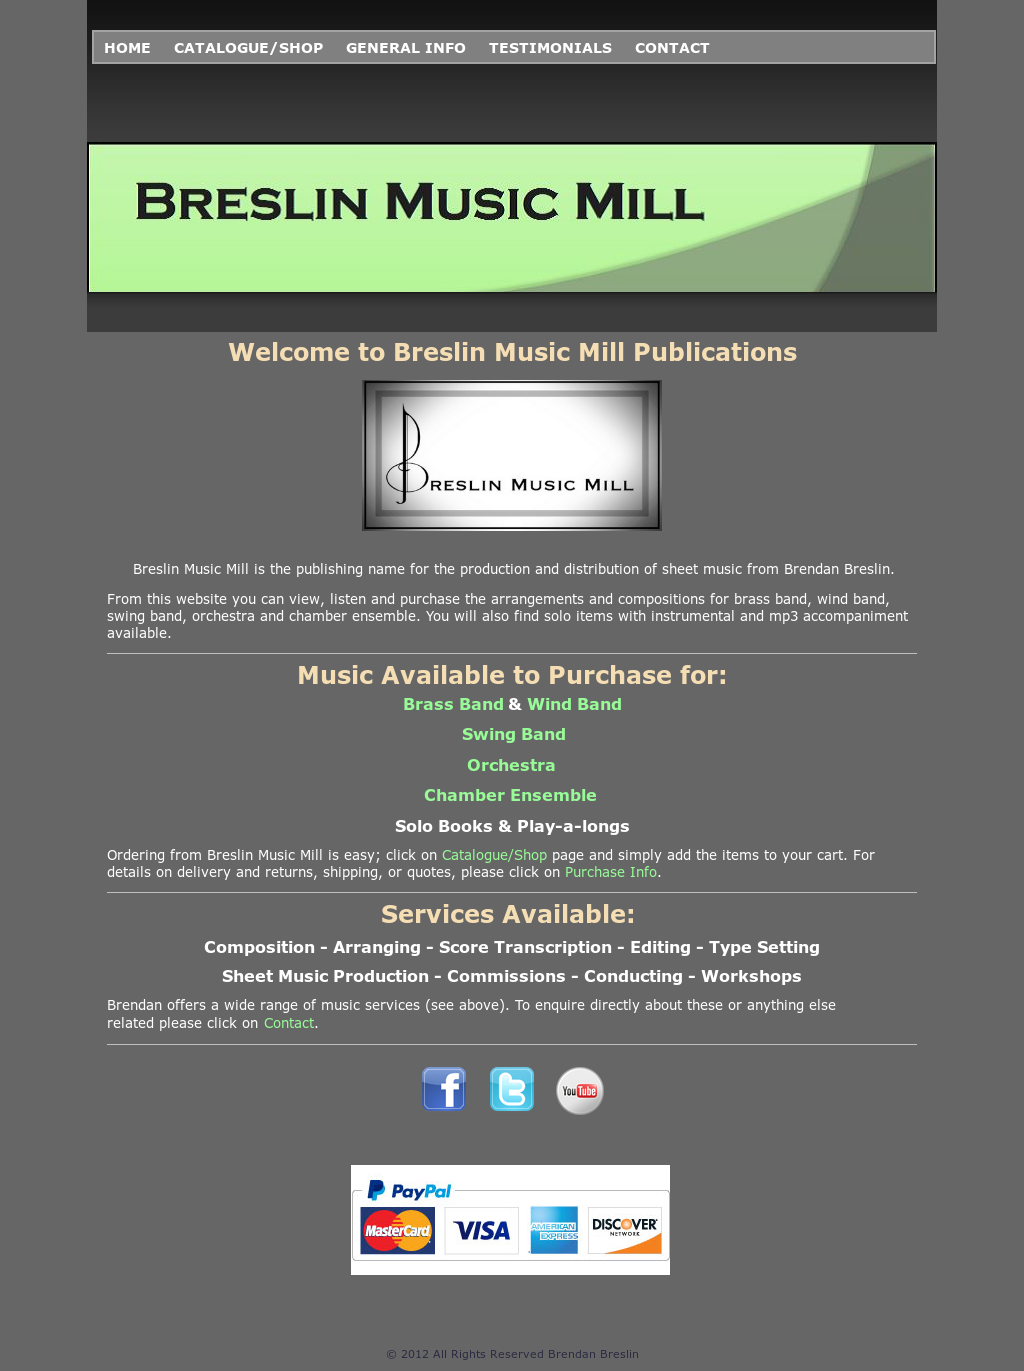 Breslin Music Mill Competitors, Revenue and Employees - Owler